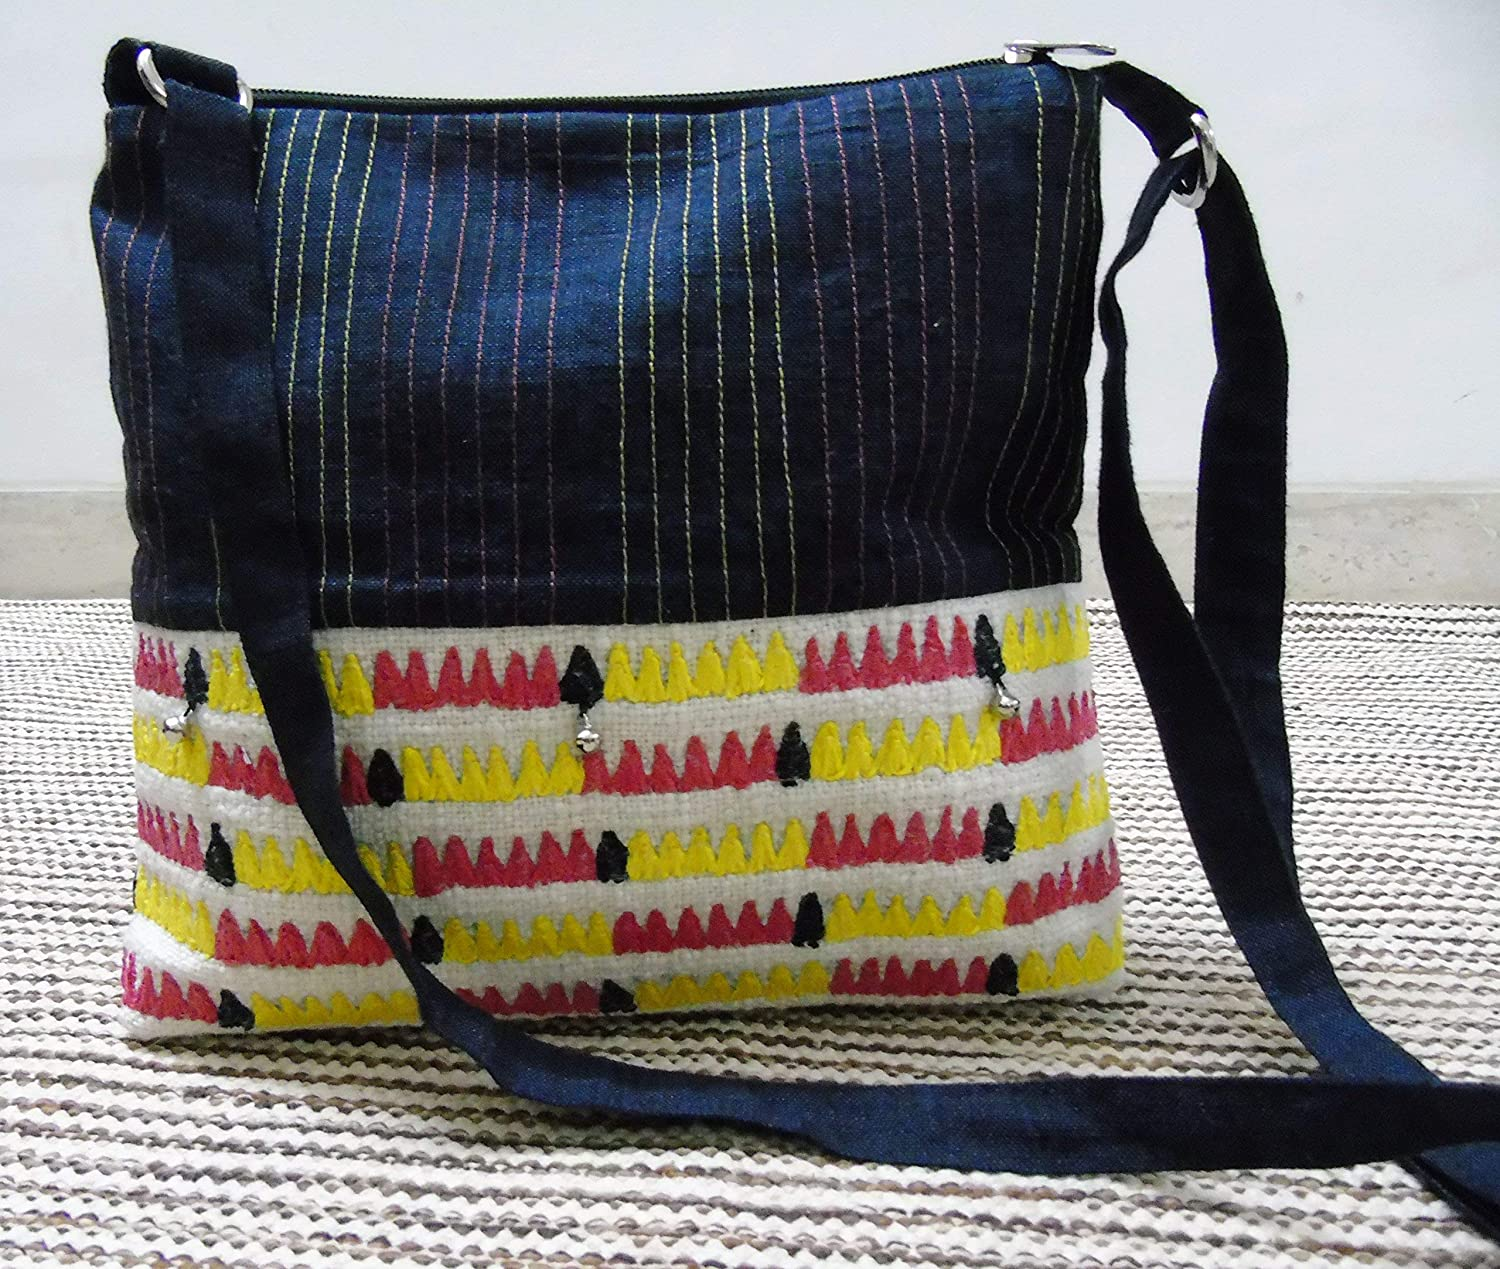 HANDMADE multi-colored pouch with lid!